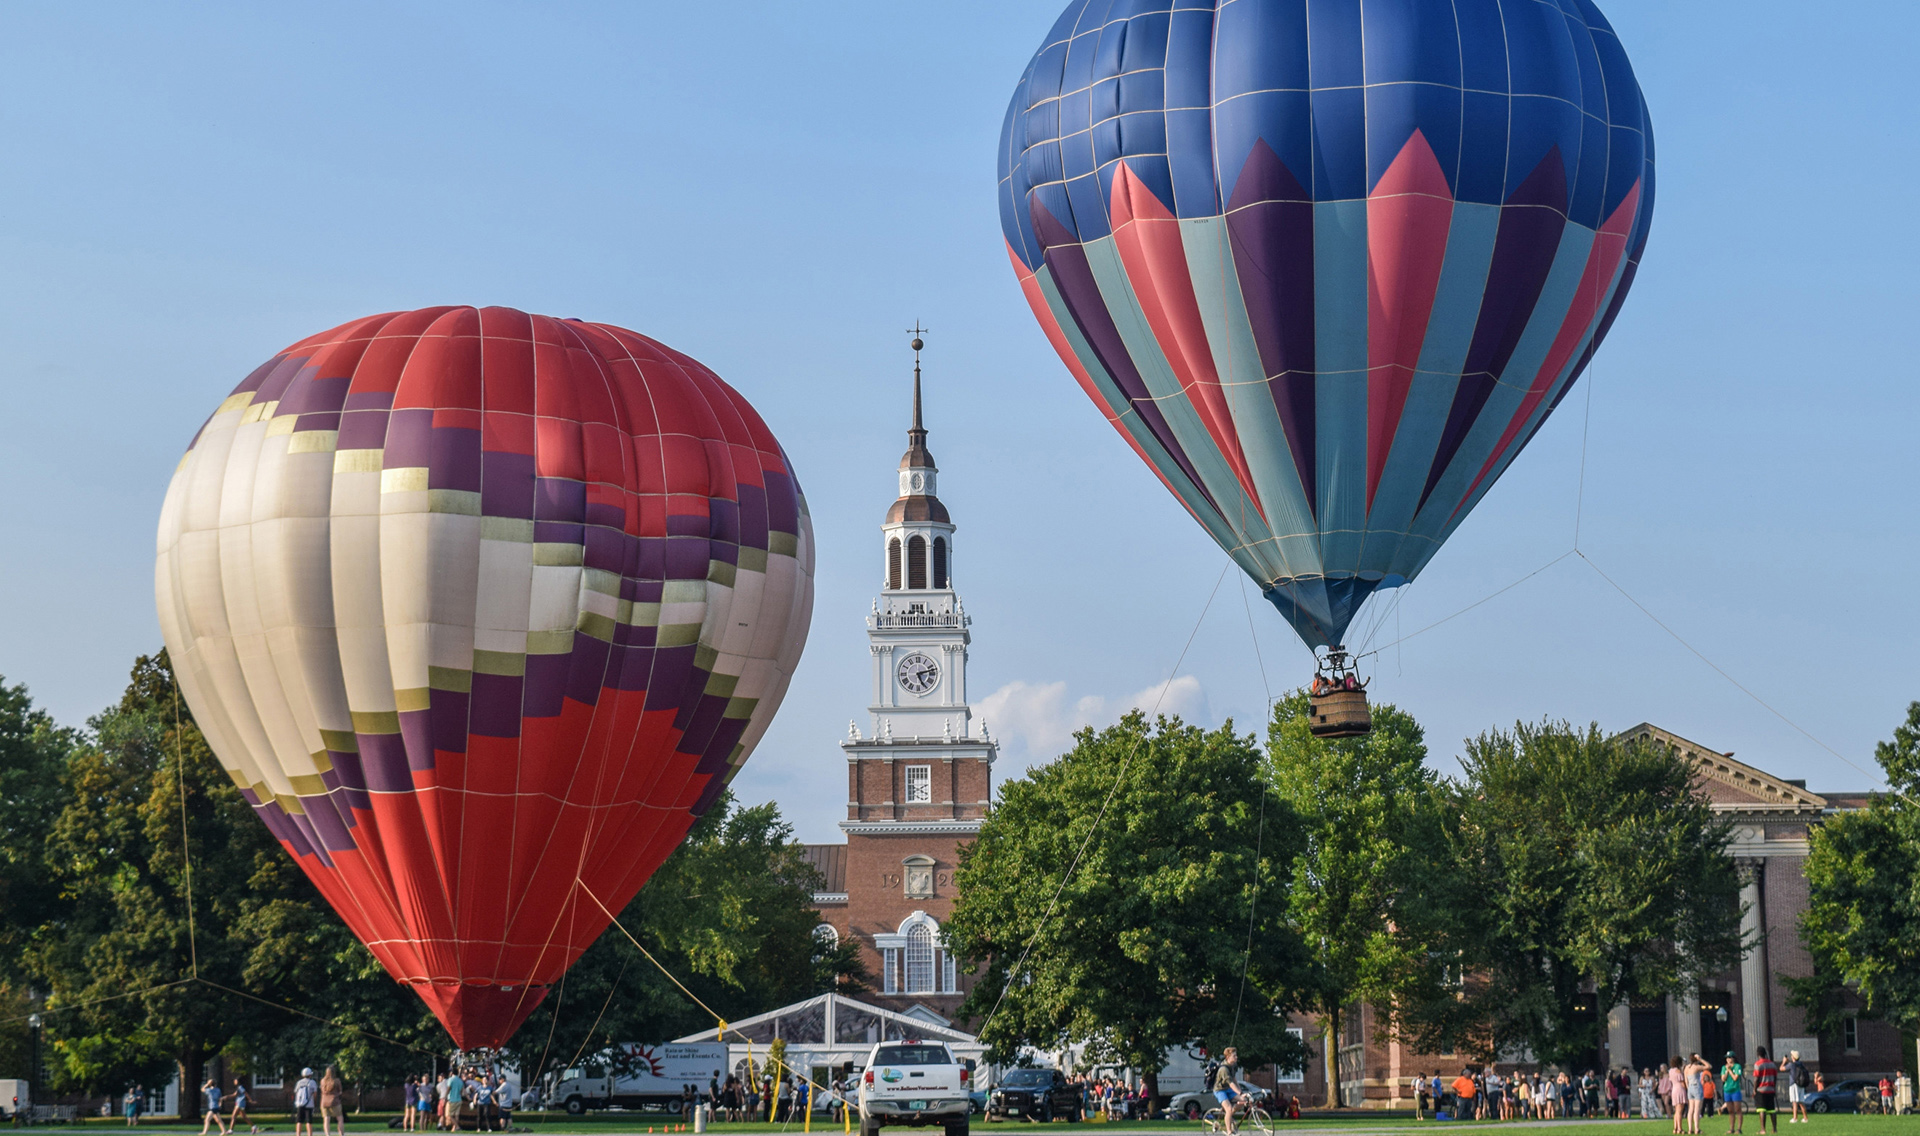 A photo of hot air balloons in front of Baker Library